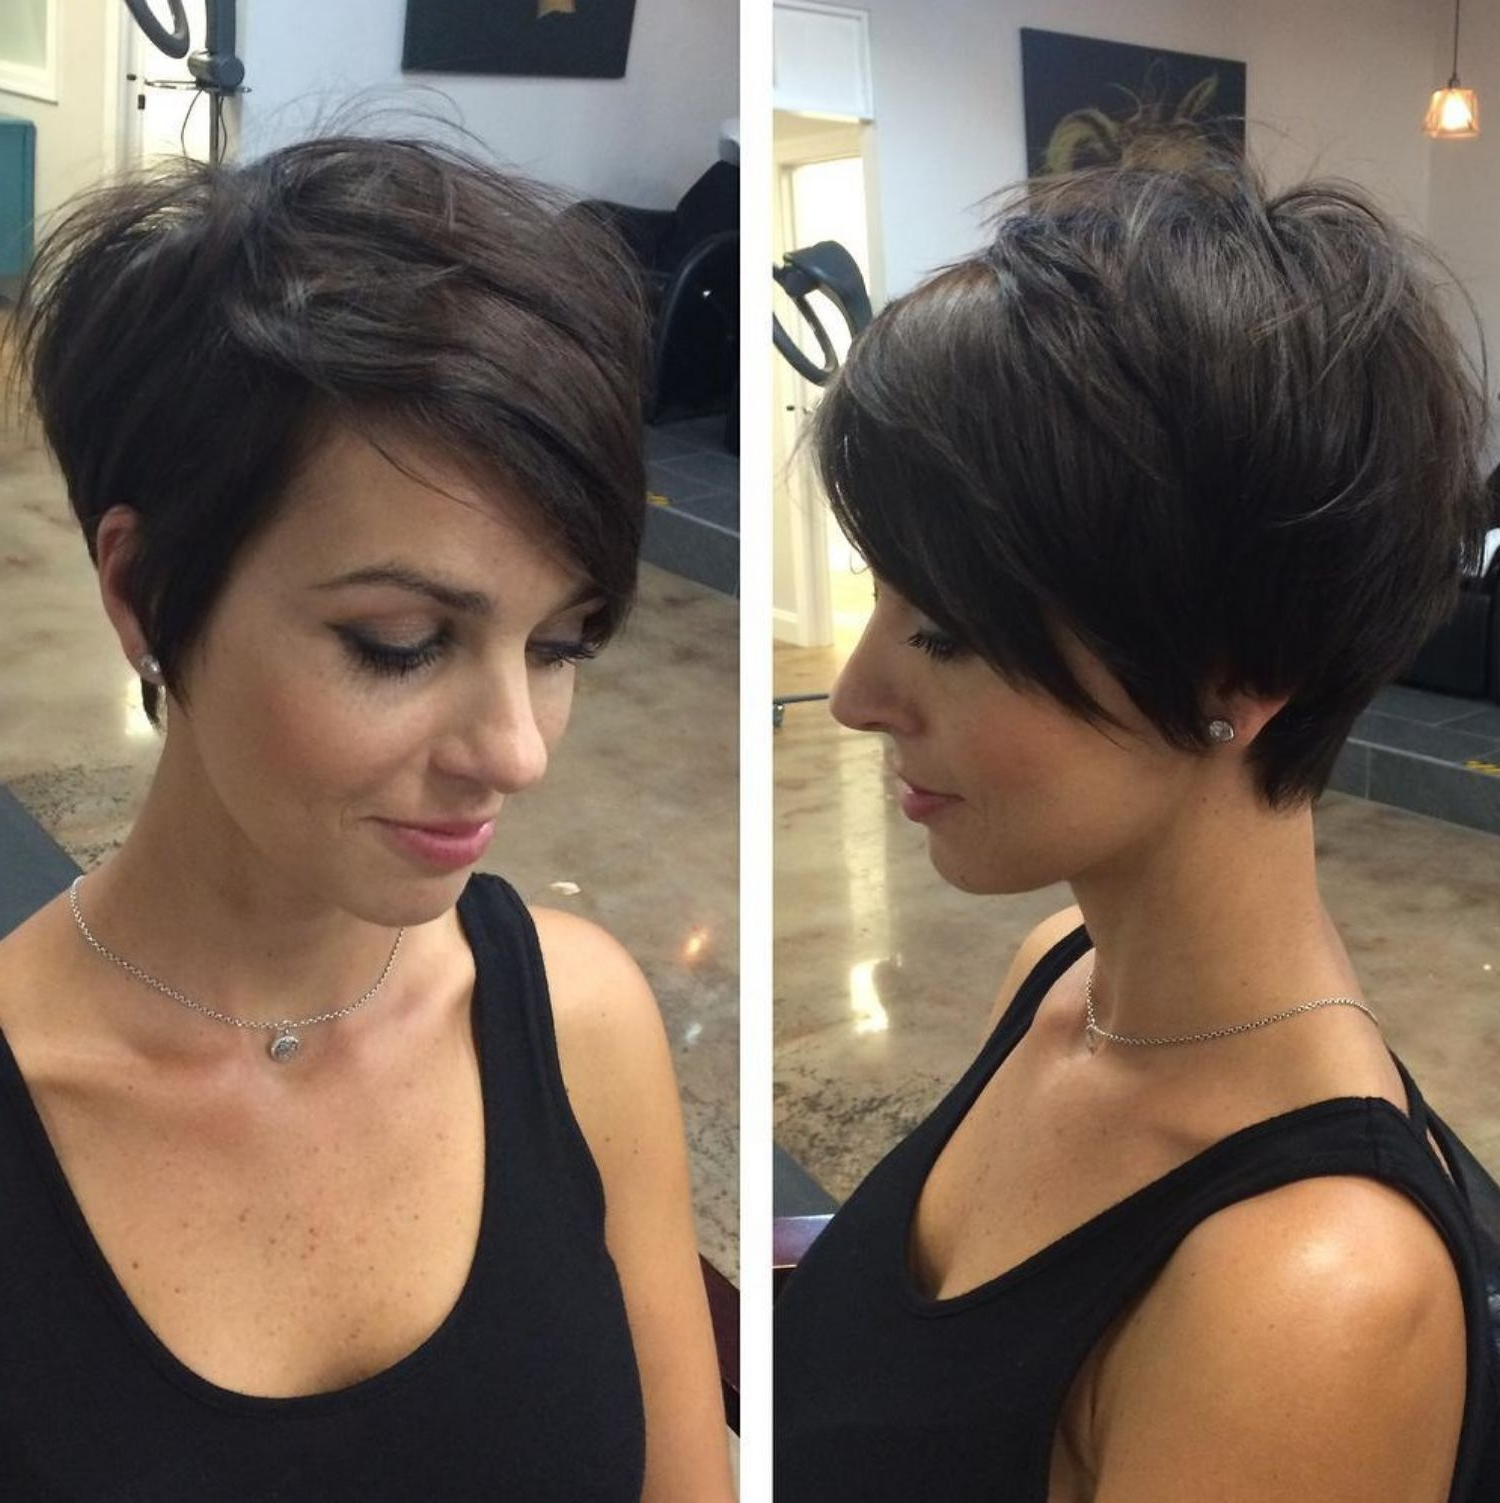 Trendy Feathery Bangs Hairstyles With A Shaggy Pixie Pertaining To Pin On Hair (View 3 of 20)